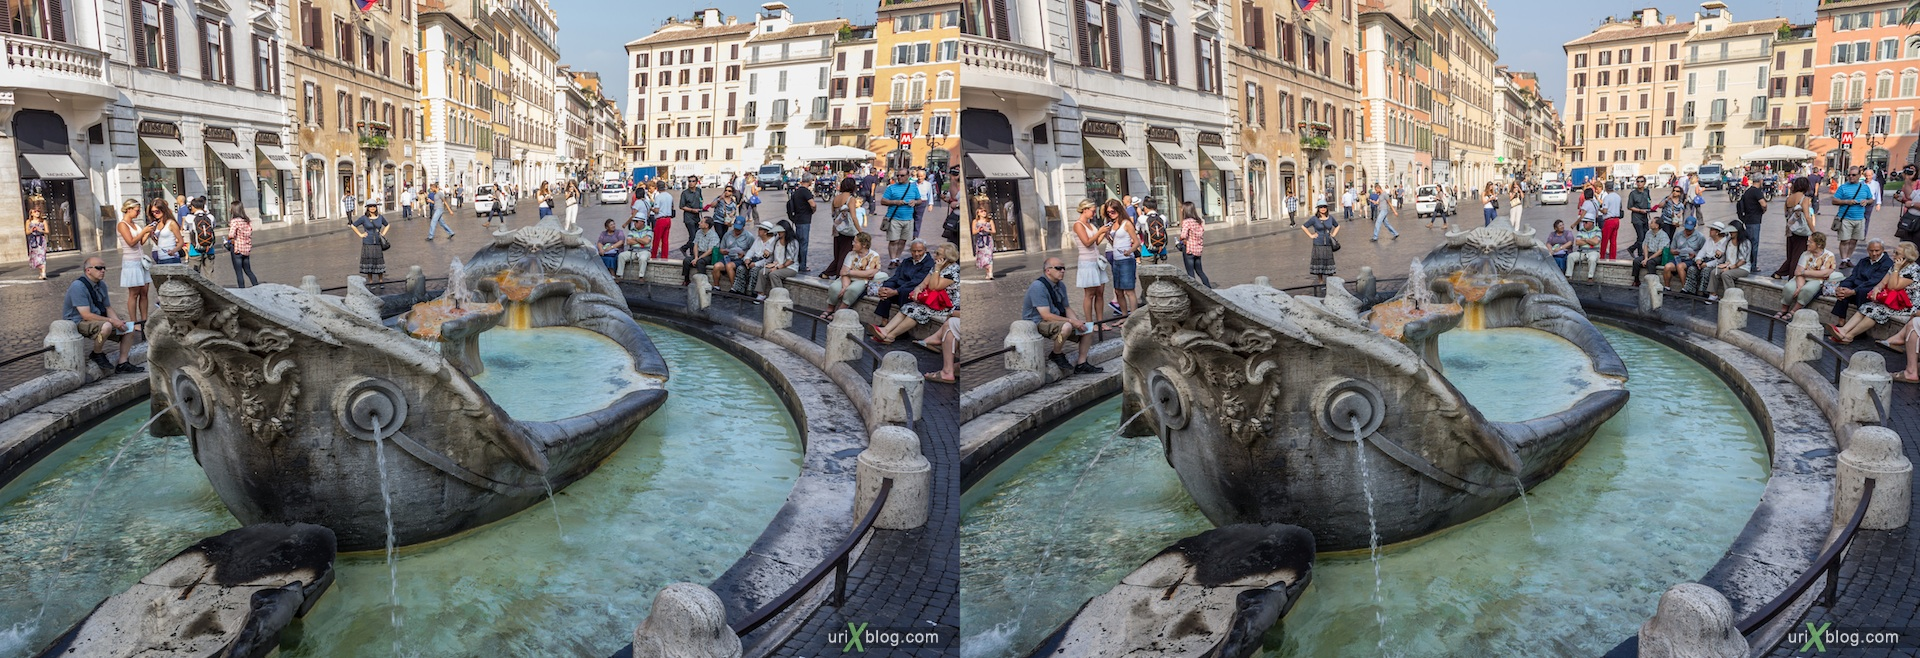 2012, fountain of the Old Boat, Spanish square, Rome, Italy, 3D, stereo pair, cross-eyed, crossview, cross view stereo pair